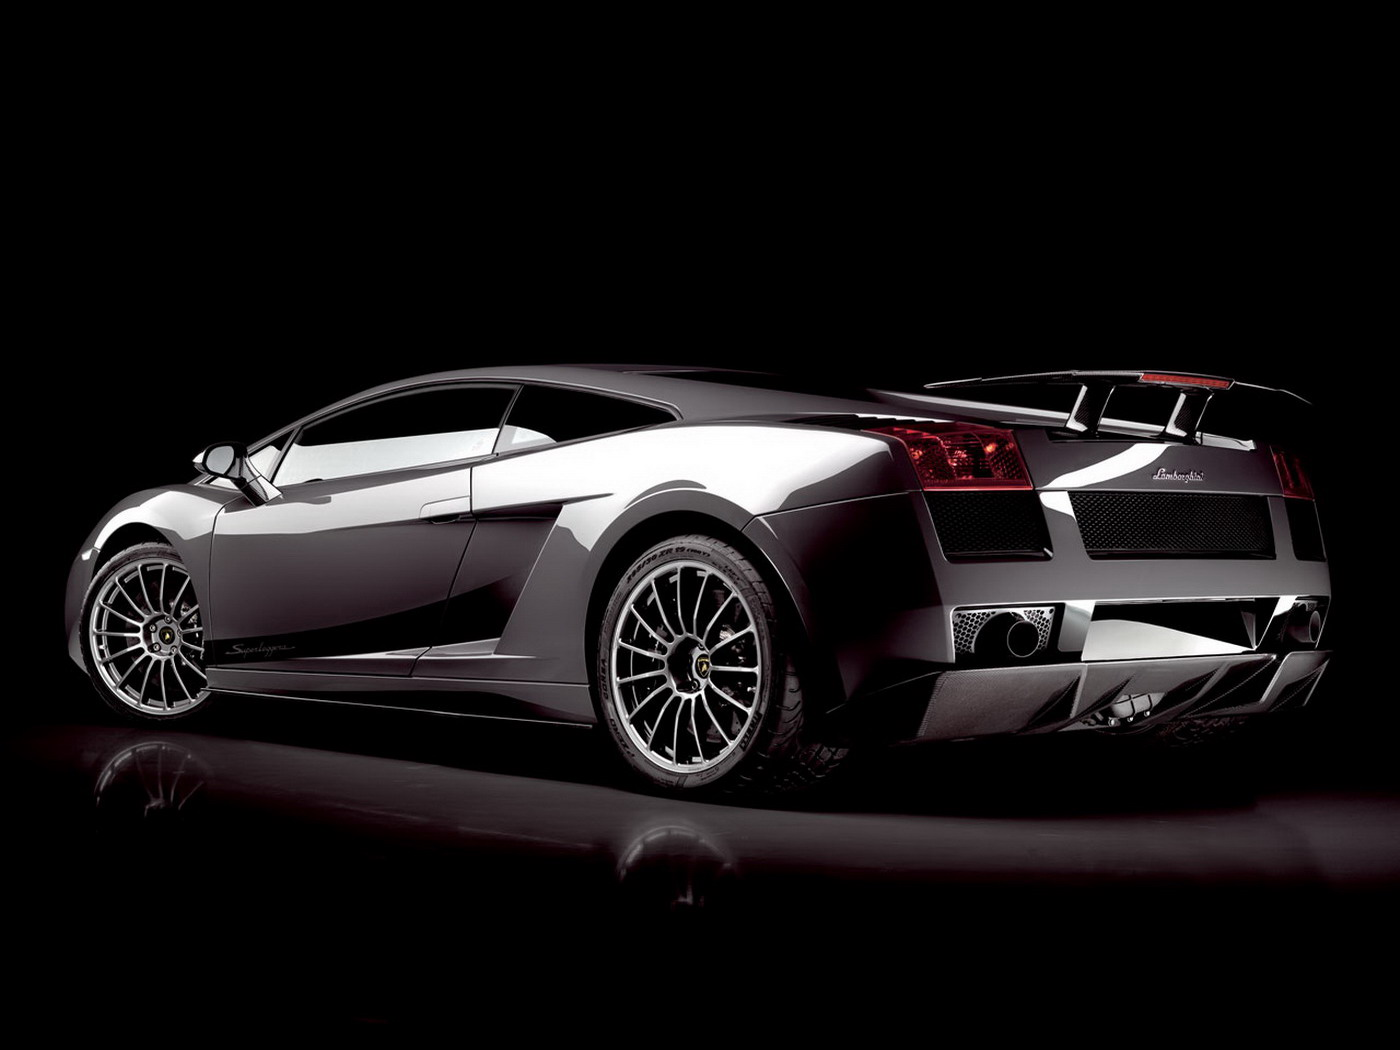 hd cars wallpapers for desktop - Mobile wallpapers